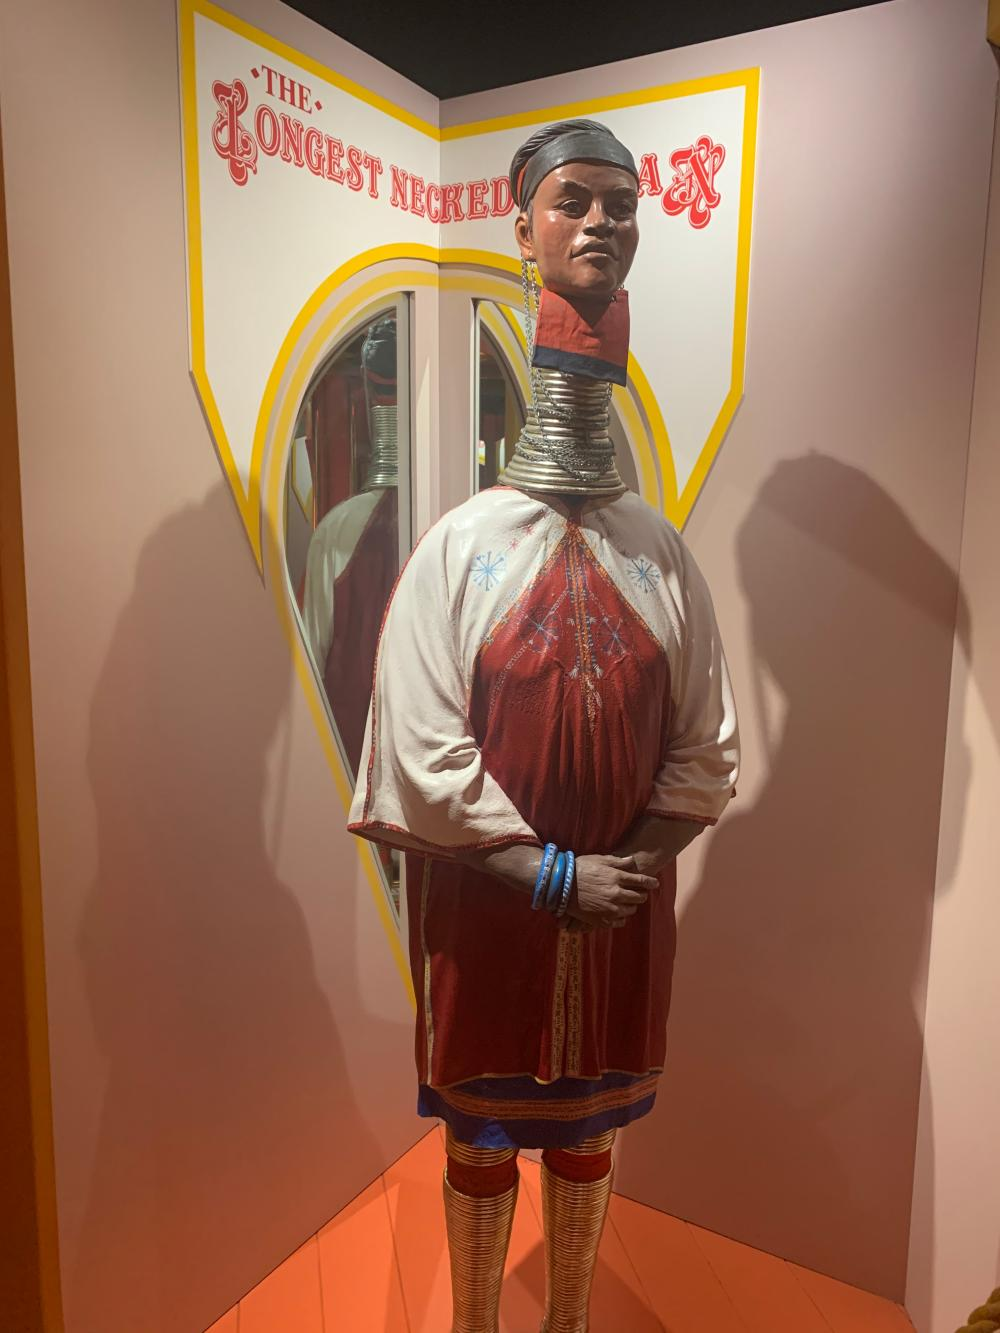 World's Longest Necked Woman Museum Display Circus Sideshow Character